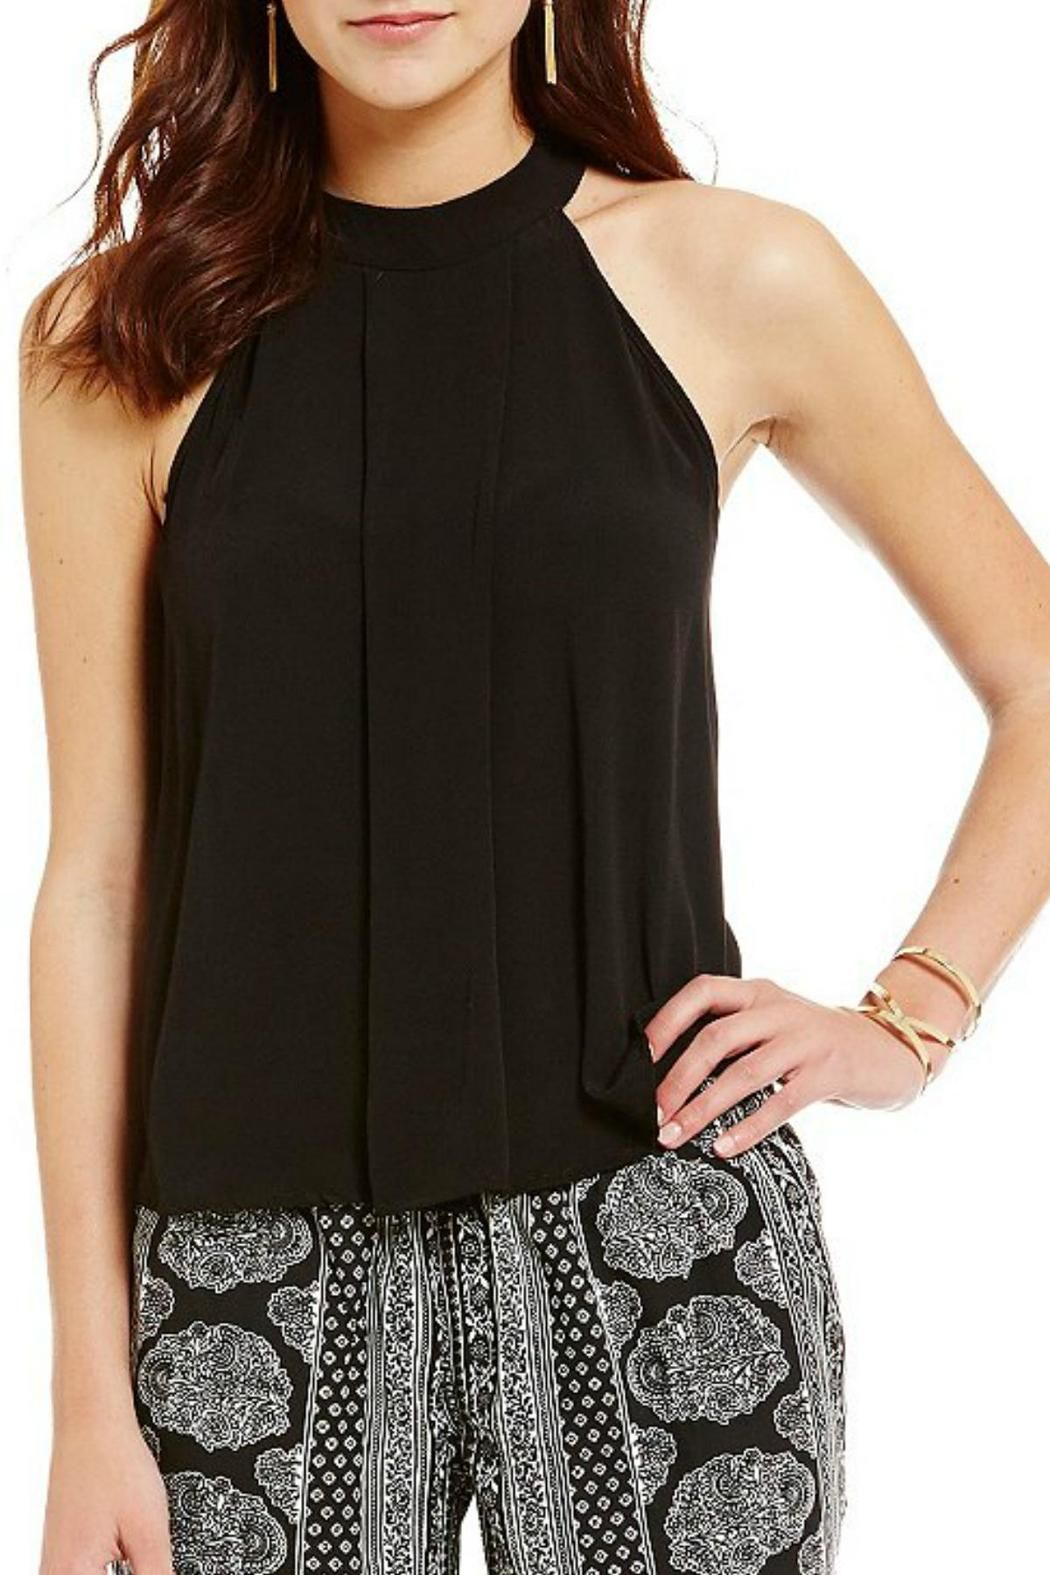 """Flowy halter top, great with jeans or under a suit jacket for work. 2 mother-of-pearl buttons at the back top of neck. The fabric is a crepe texture which could be dressed up with a skirt and accessories for a more formal look.Measures approximately 23"""" from top of shoulder to bottom hem (size medium) Halter Top by Beth Friedman. Clothing - Tops Arizona"""